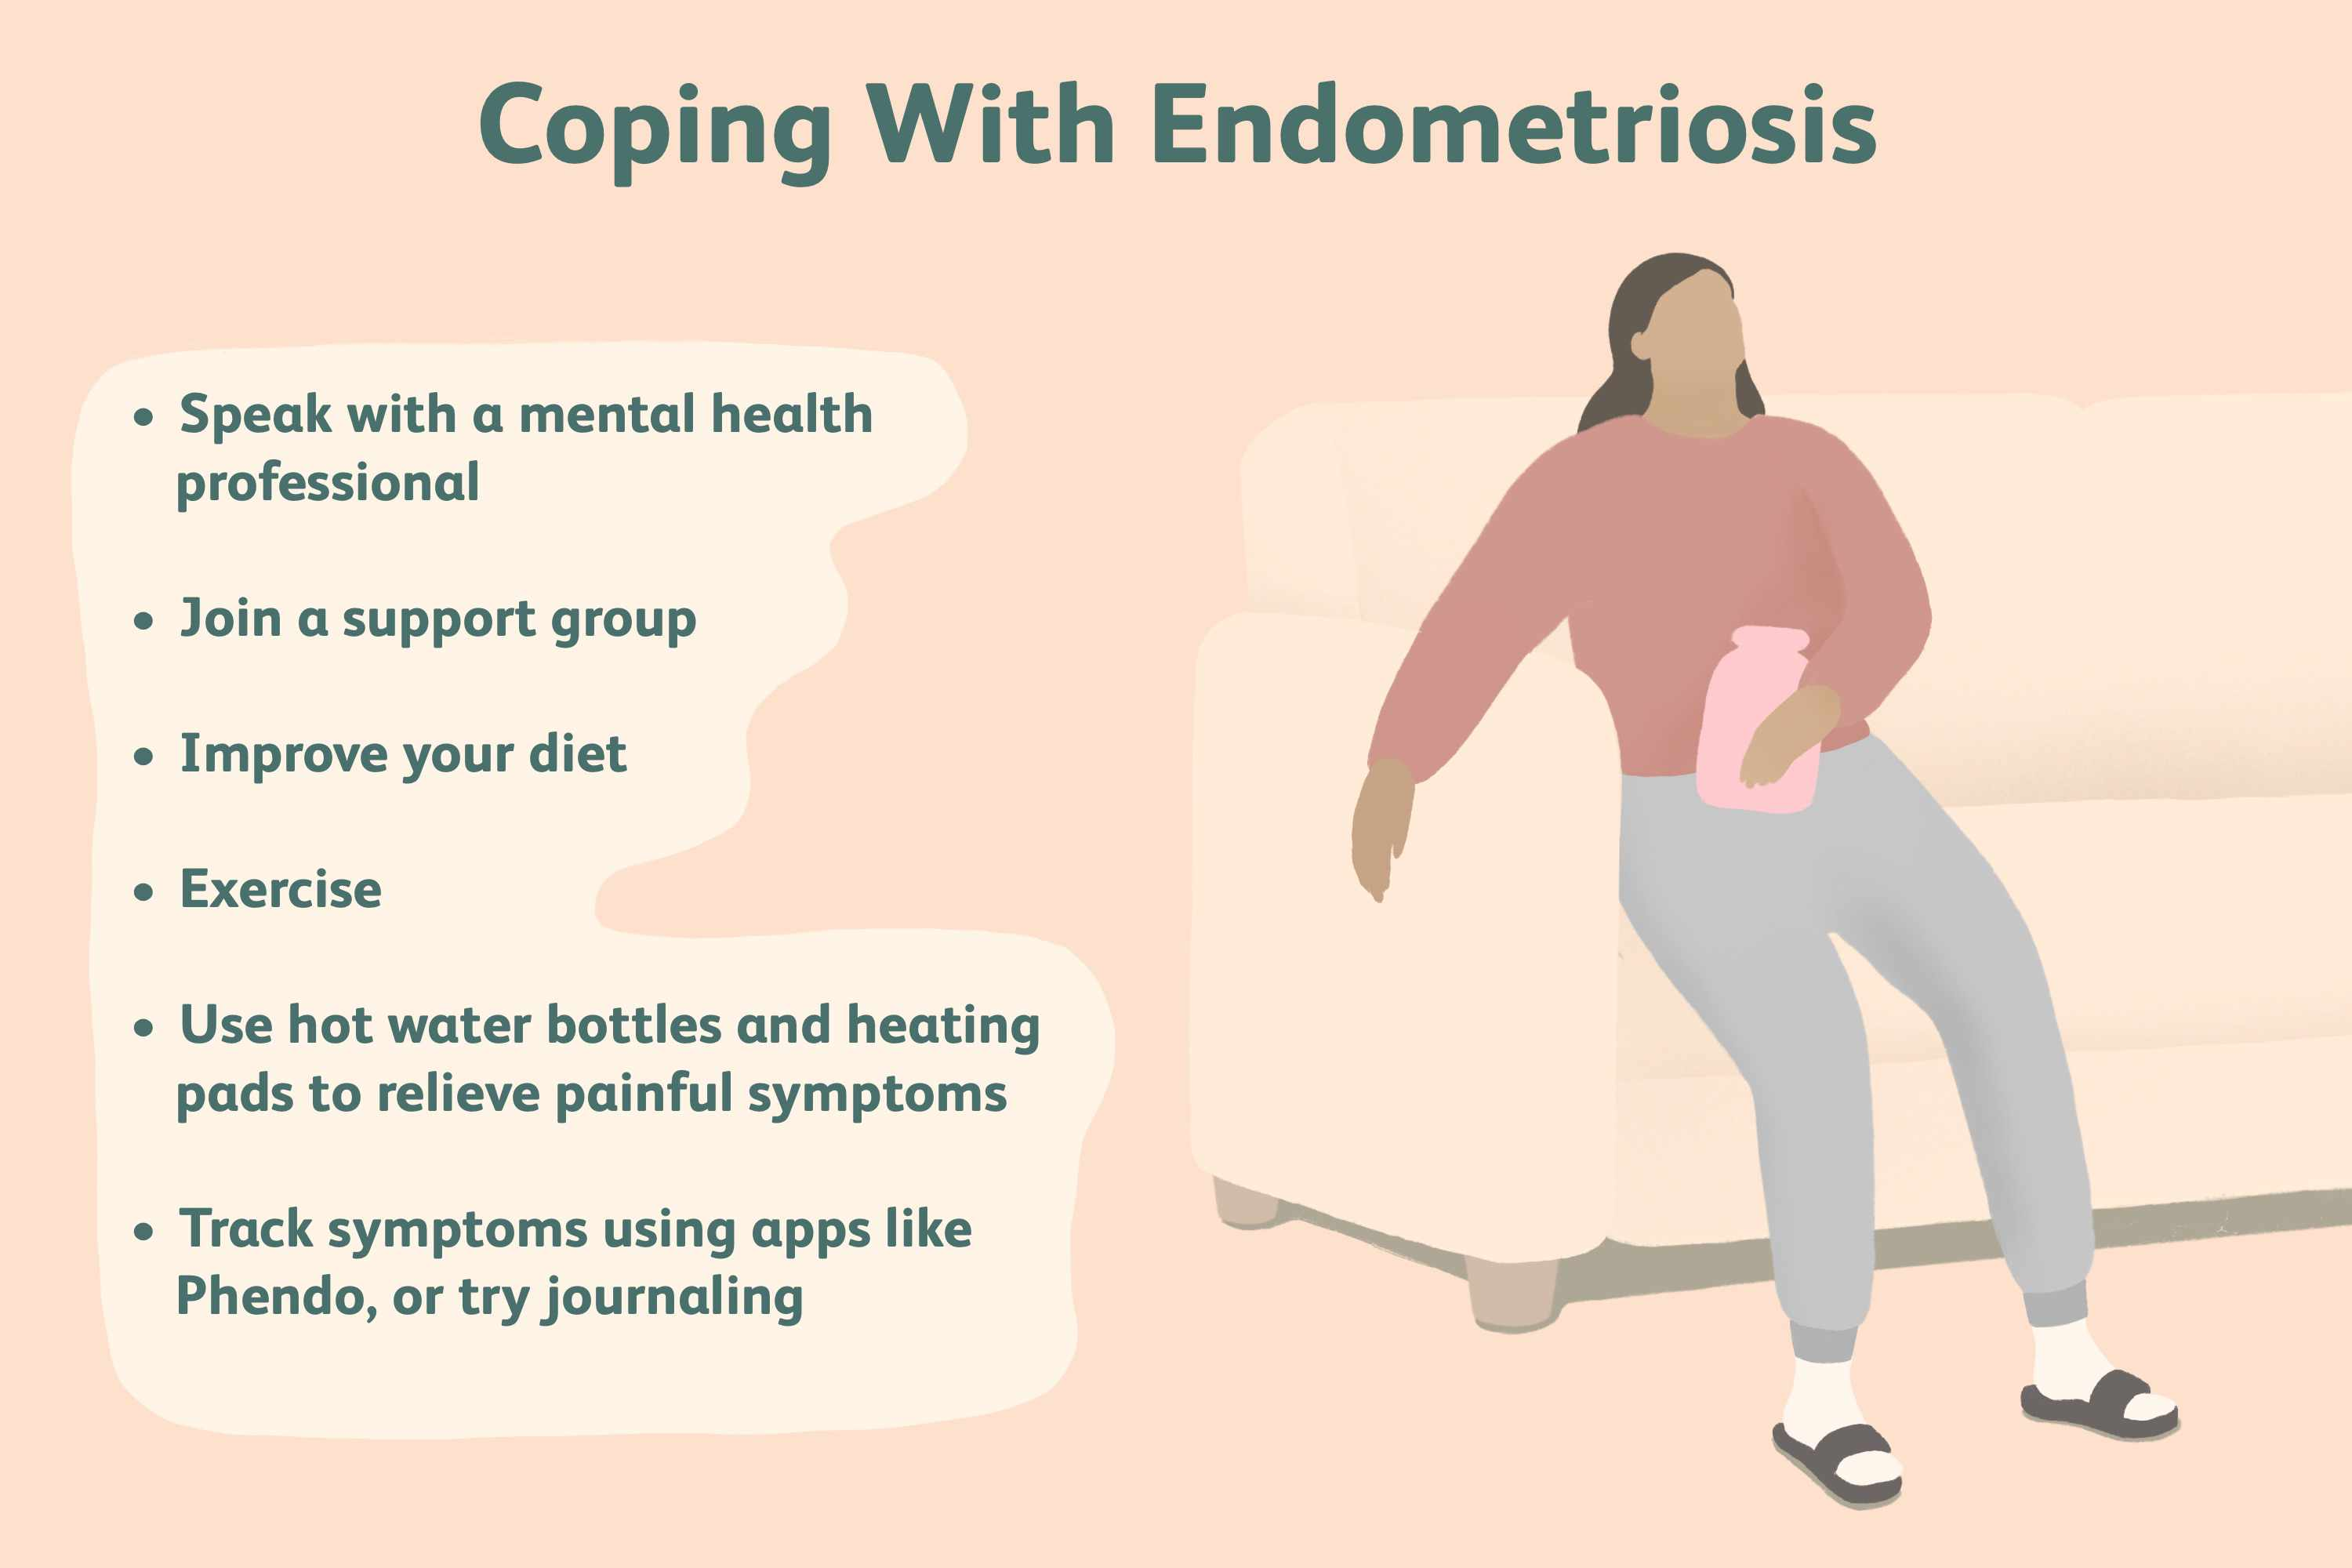 Endometriosis: Coping, Support, and Living Well